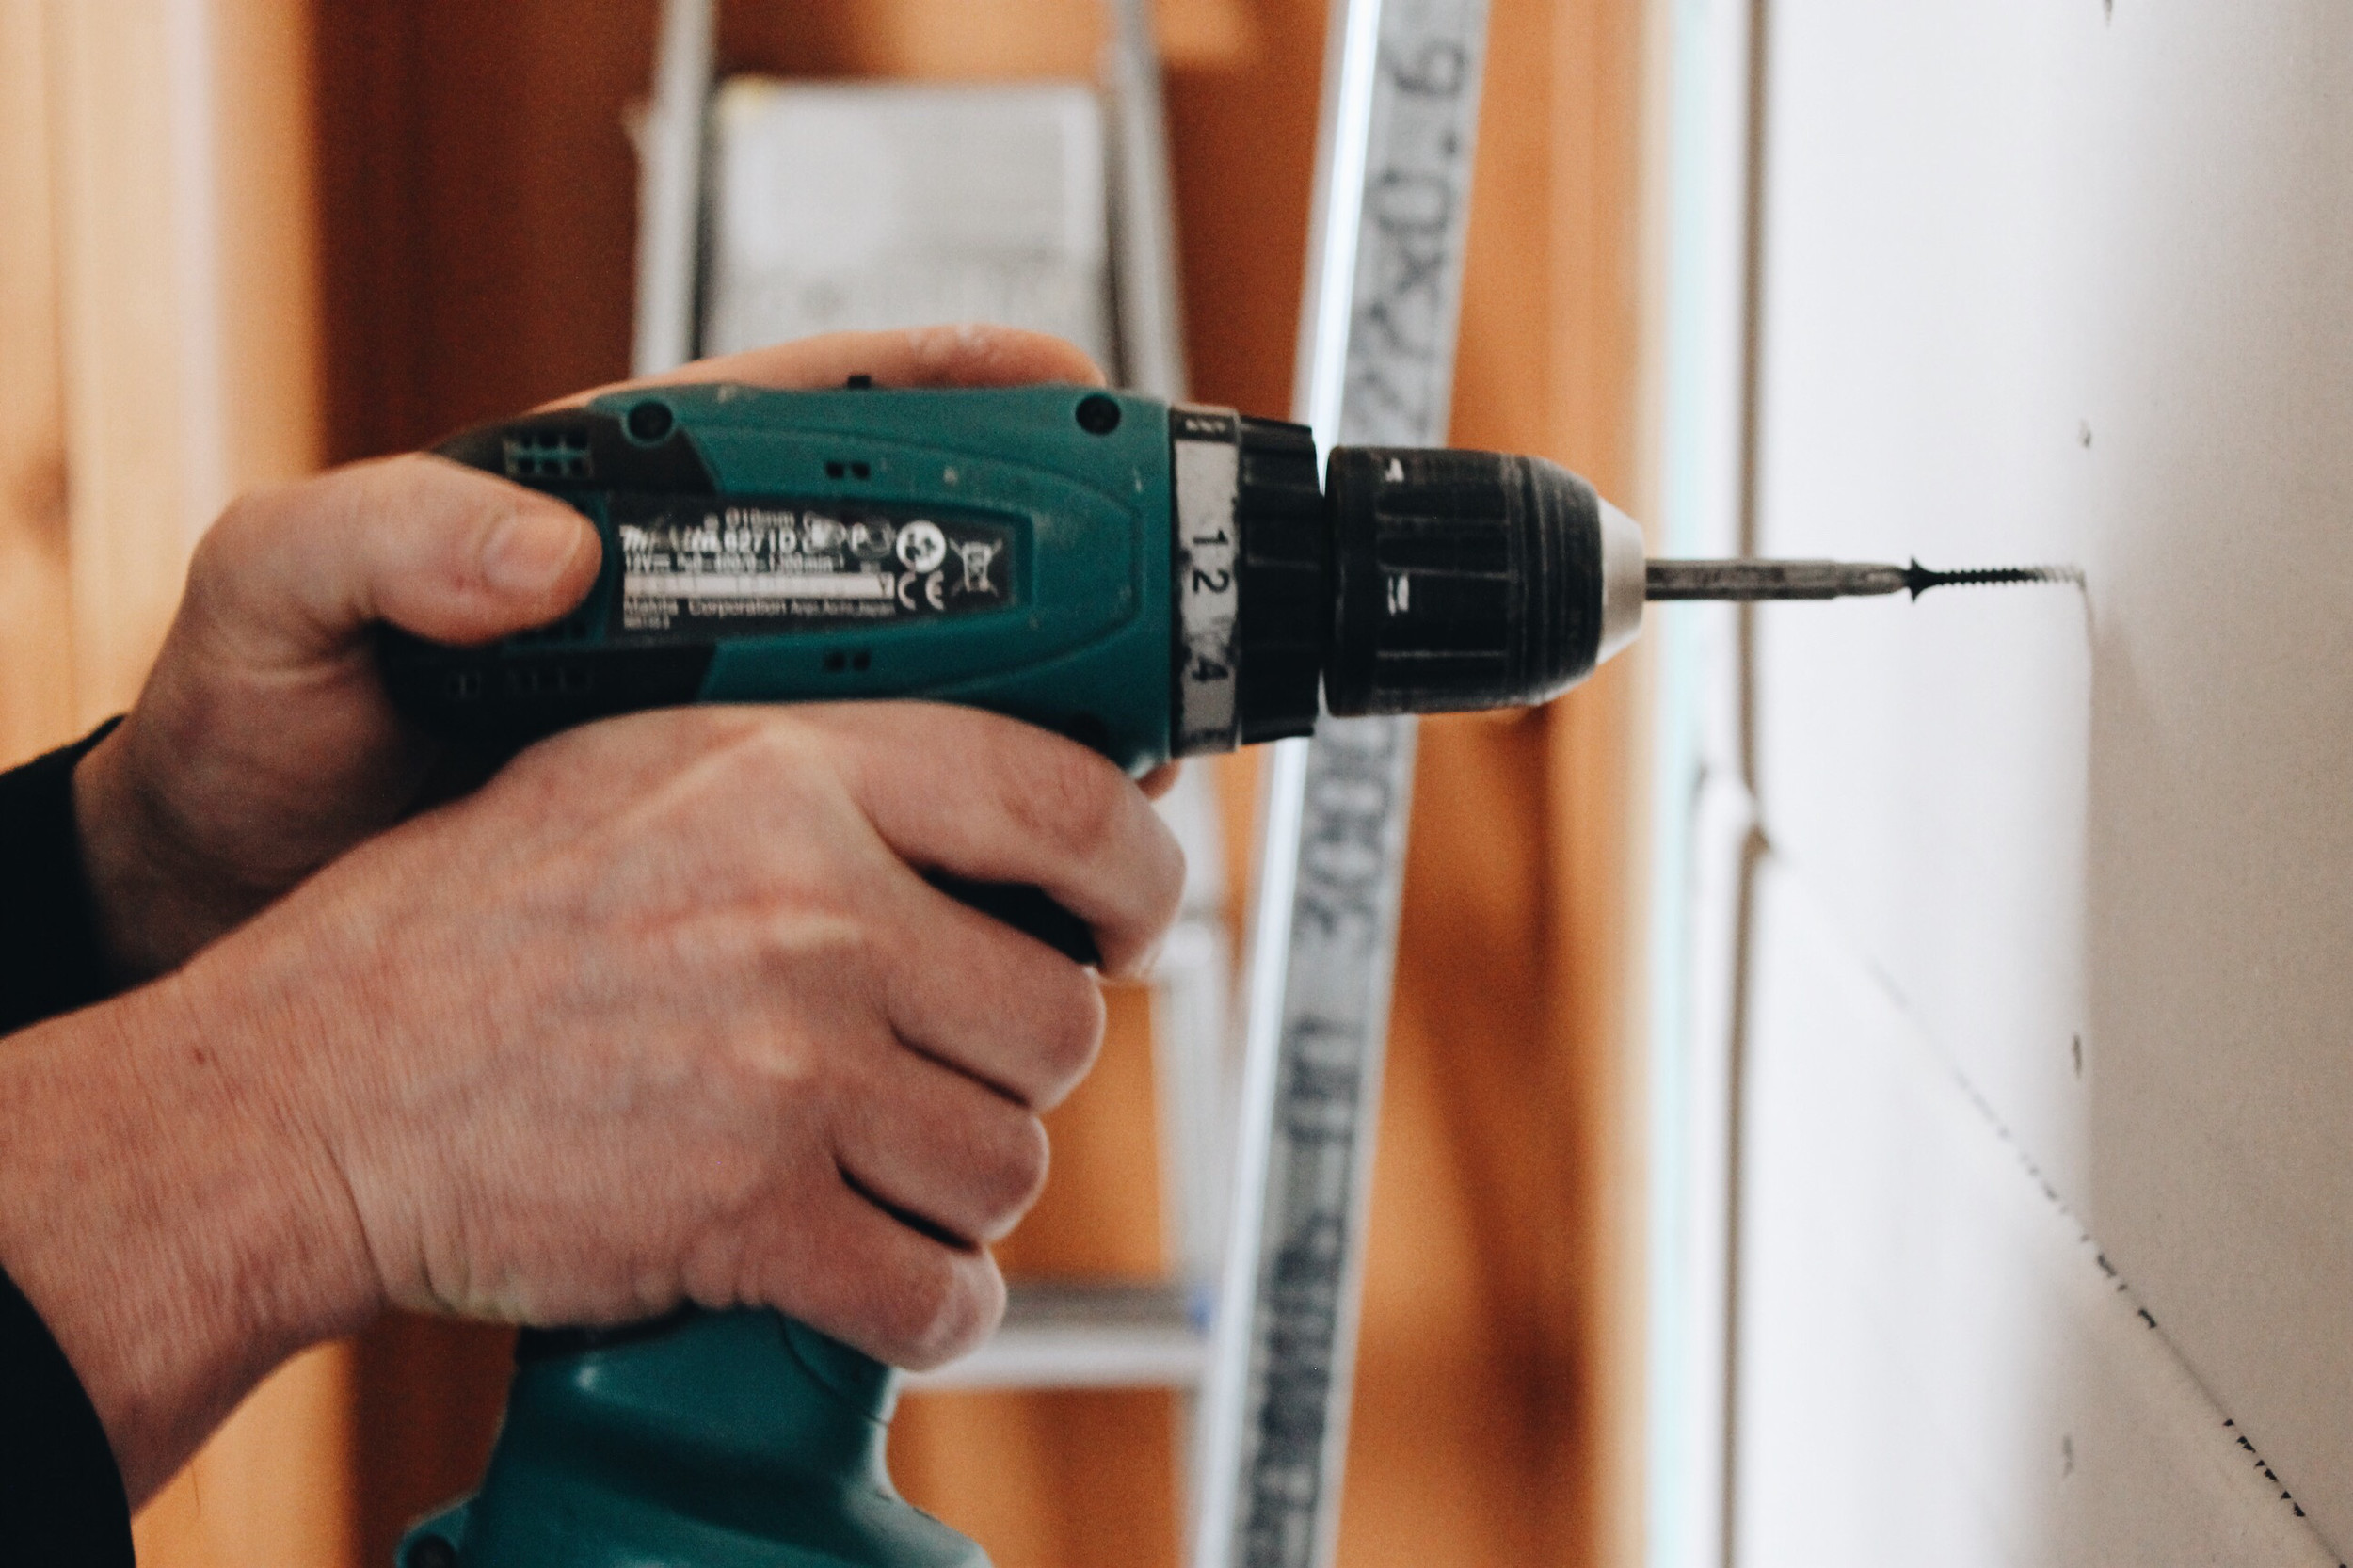 3 ways a mortgage beats renting for aspiring DIY'ers